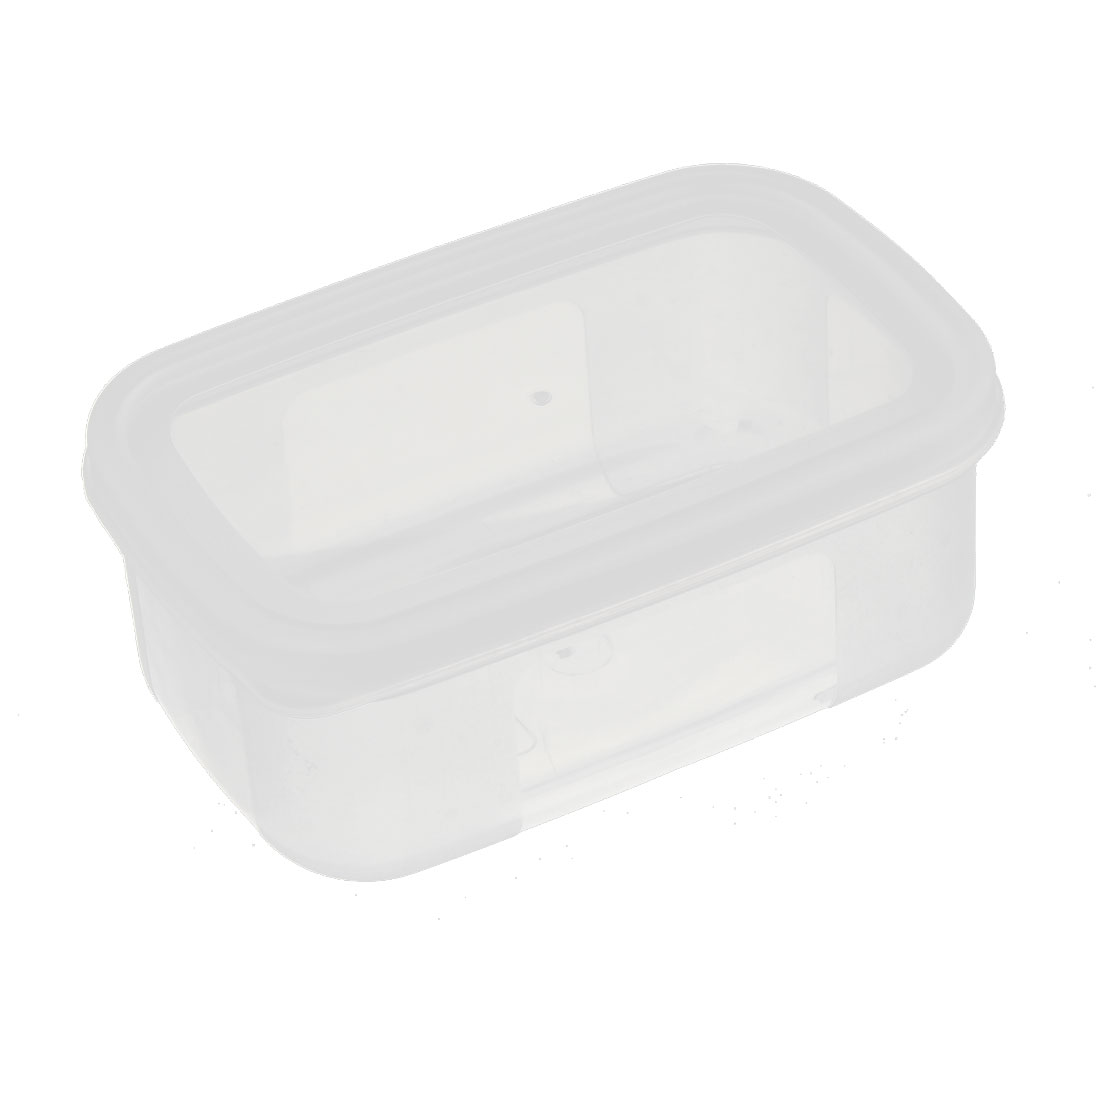 Home Office Components Mini Clip-on Lid Storage Box Container 12cm x 7.9cm x 4.6cm